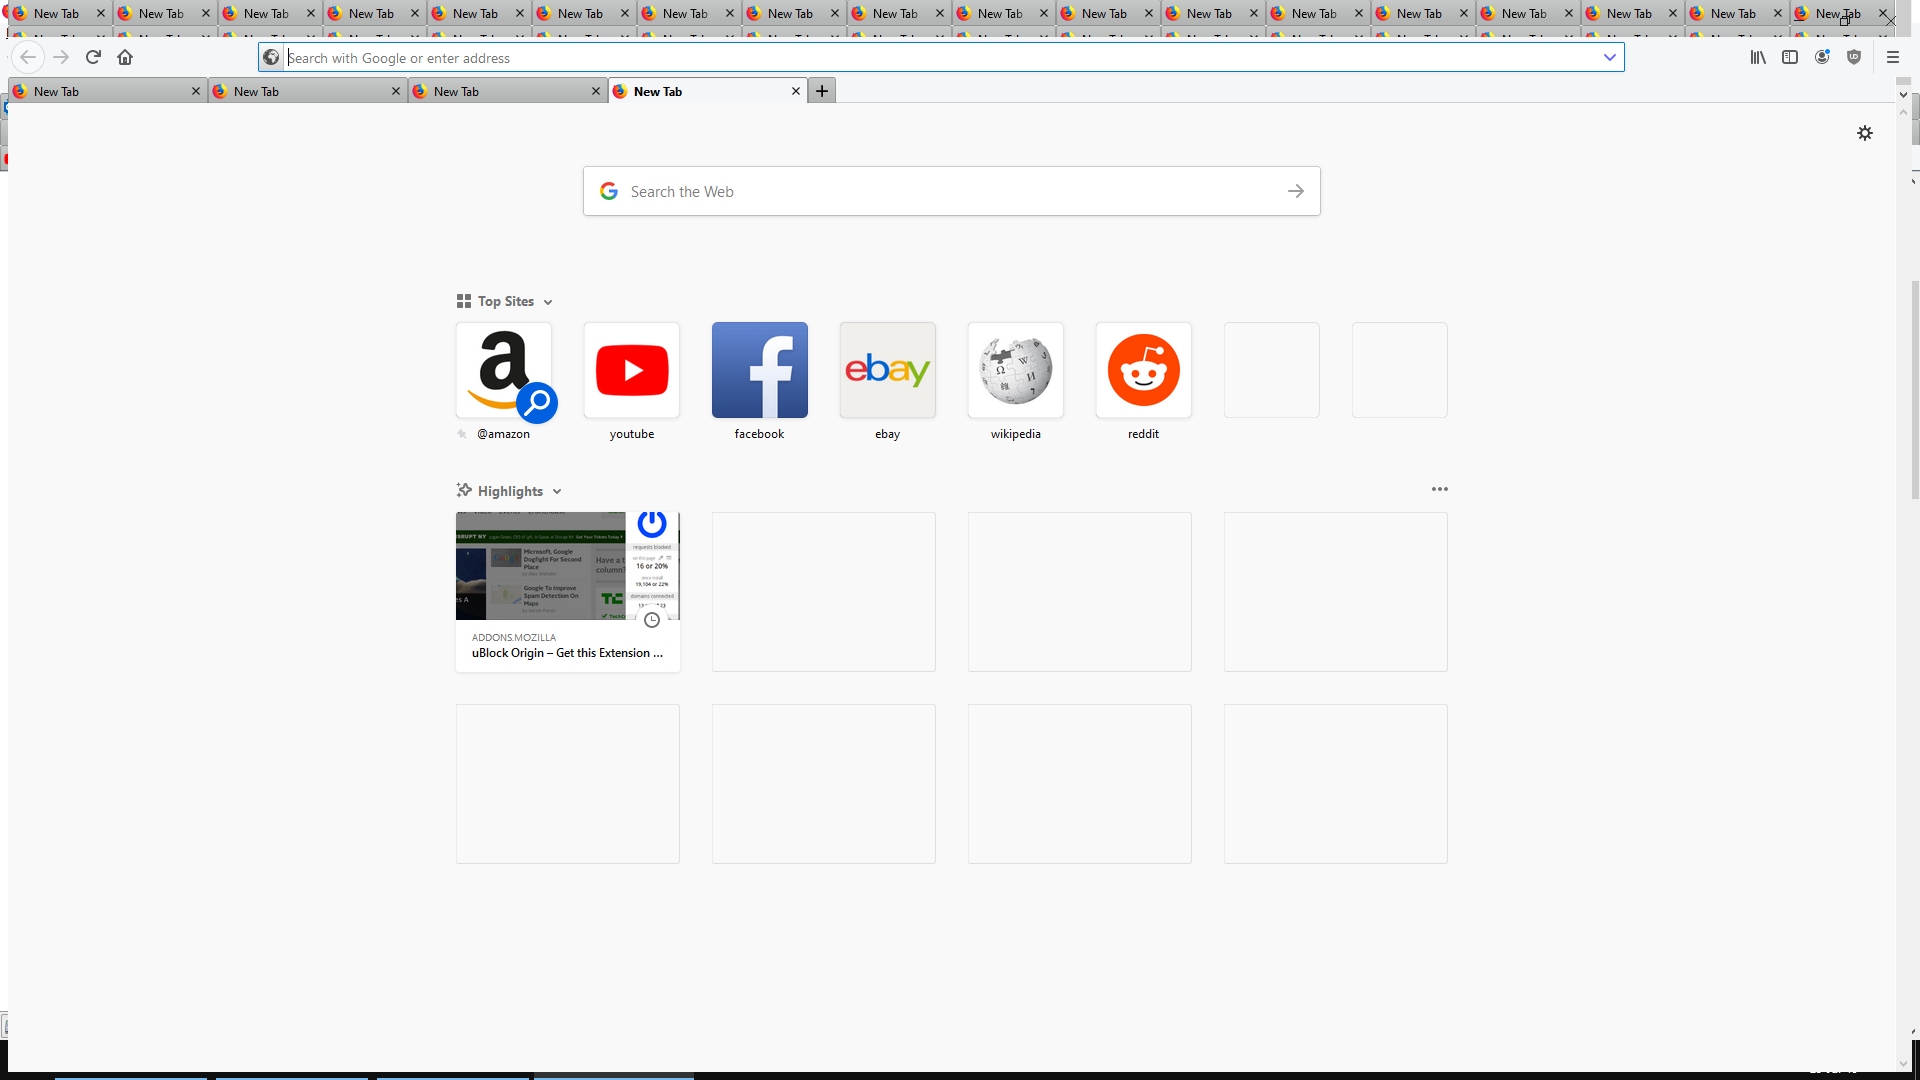 TABS BELOW CONTENT SUPPORT THREAD] - tabs on windows bottom · Issue